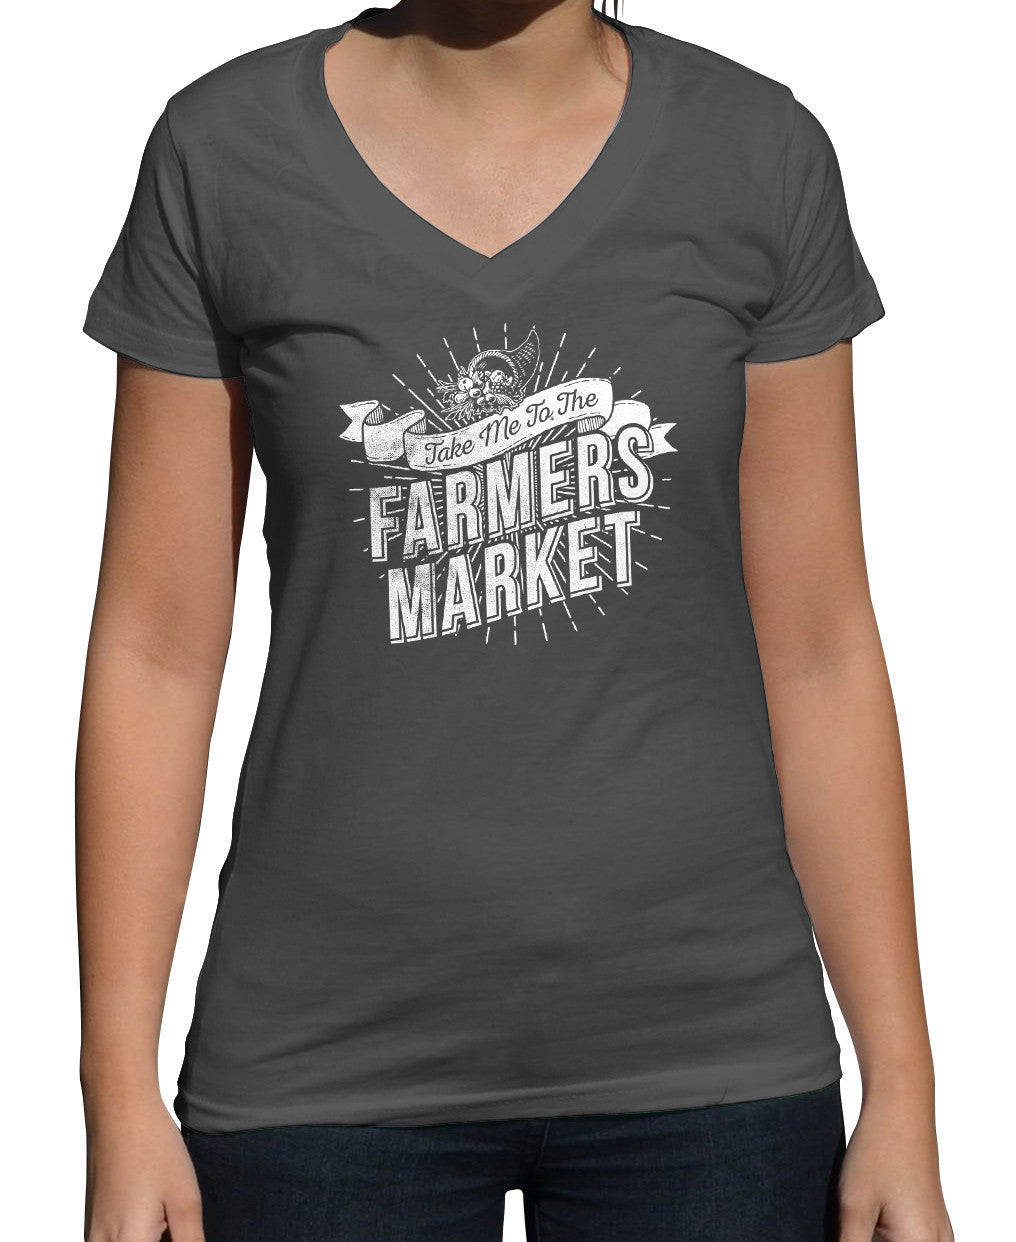 Women's Take me to the Farmers Market Vneck T-Shirt - Cool Hipster Foodie